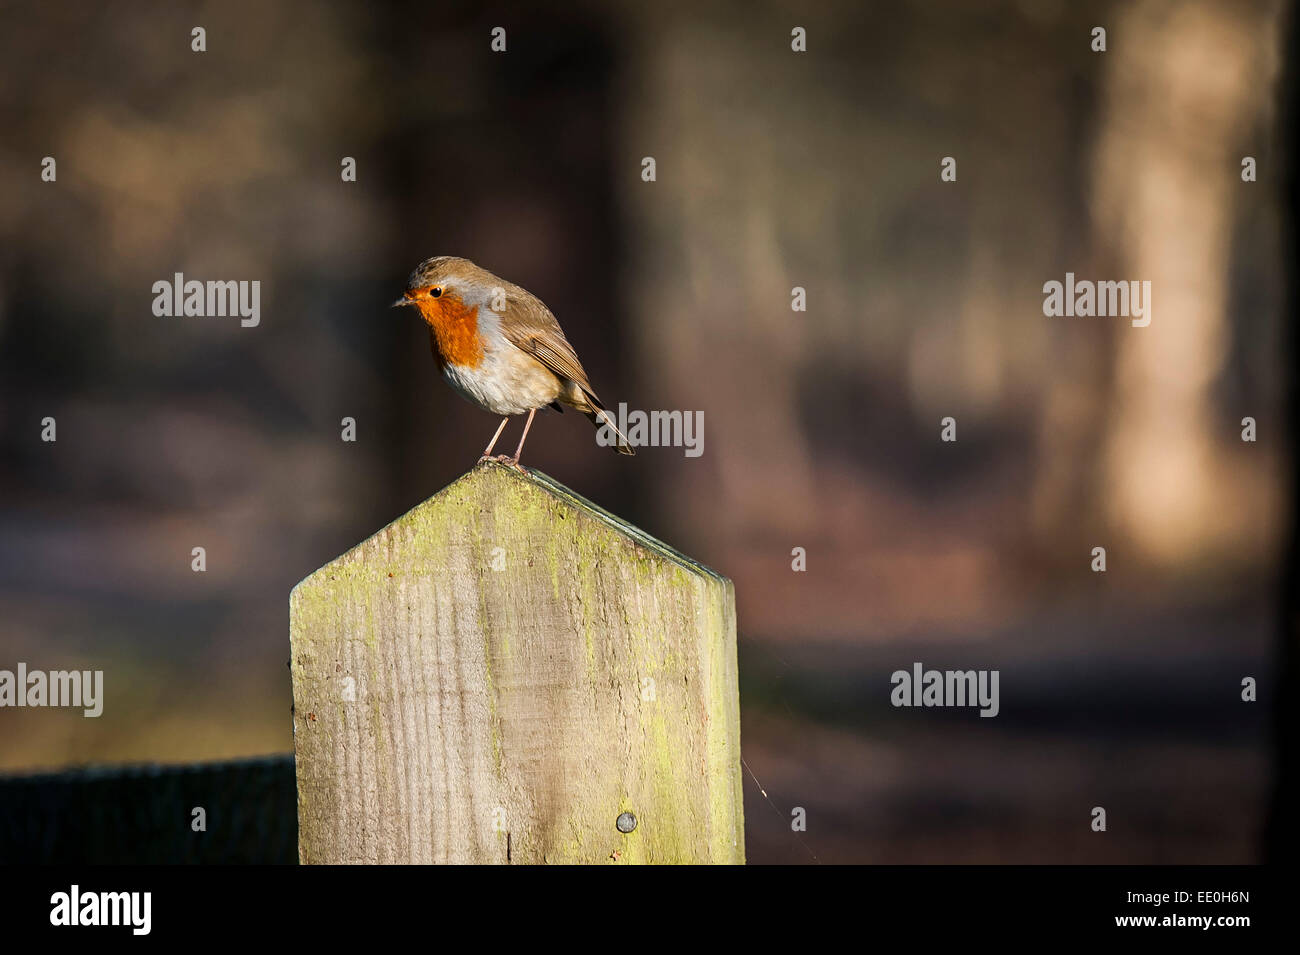 A Robin perched on a fence post.  The Robin is the UK's favourite wild bird. - Stock Image